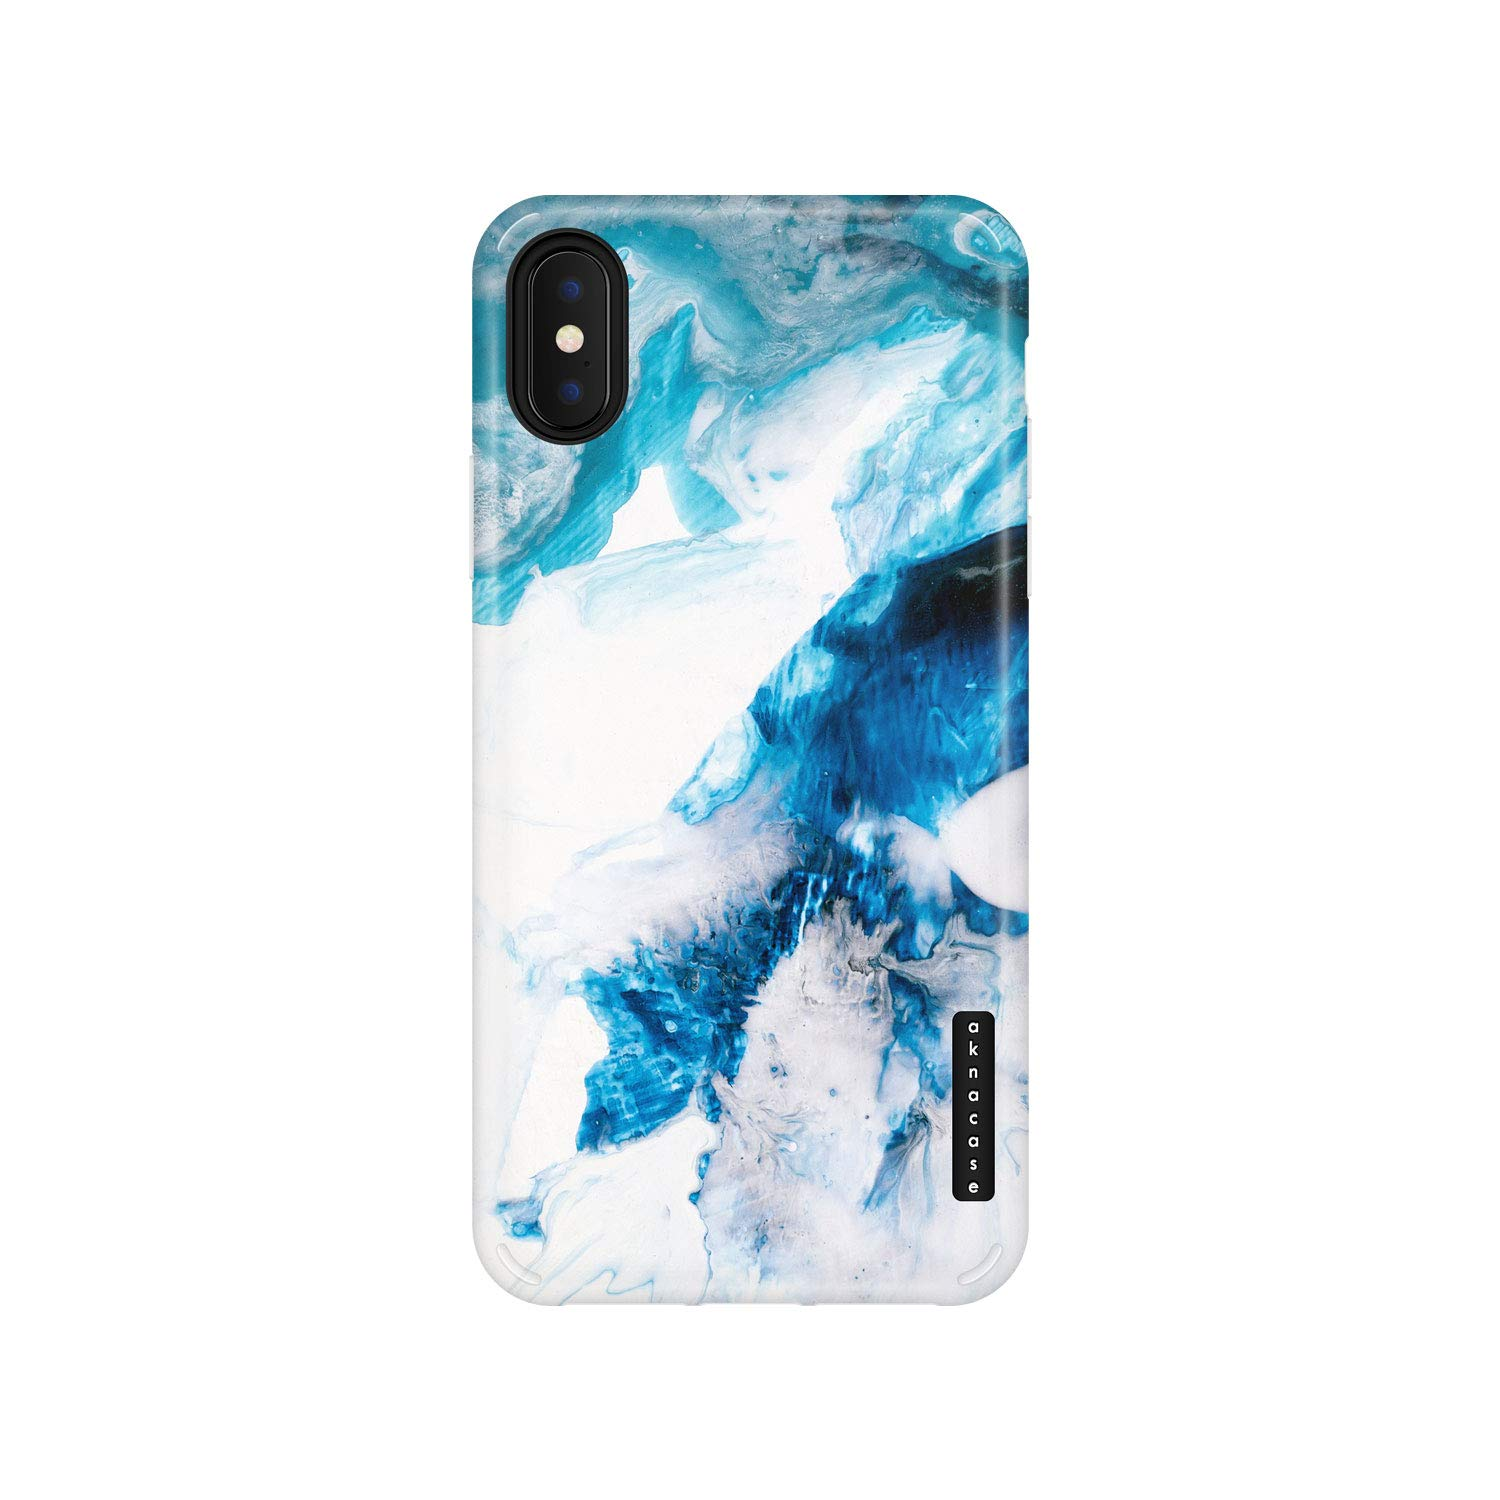 iPhone X & iPhone Xs Case Watercolor, Akna Sili-Tastic Series High Impact Silicon Cover with Full HD+ Graphics for iPhone X & iPhone Xs (101707-U.S)